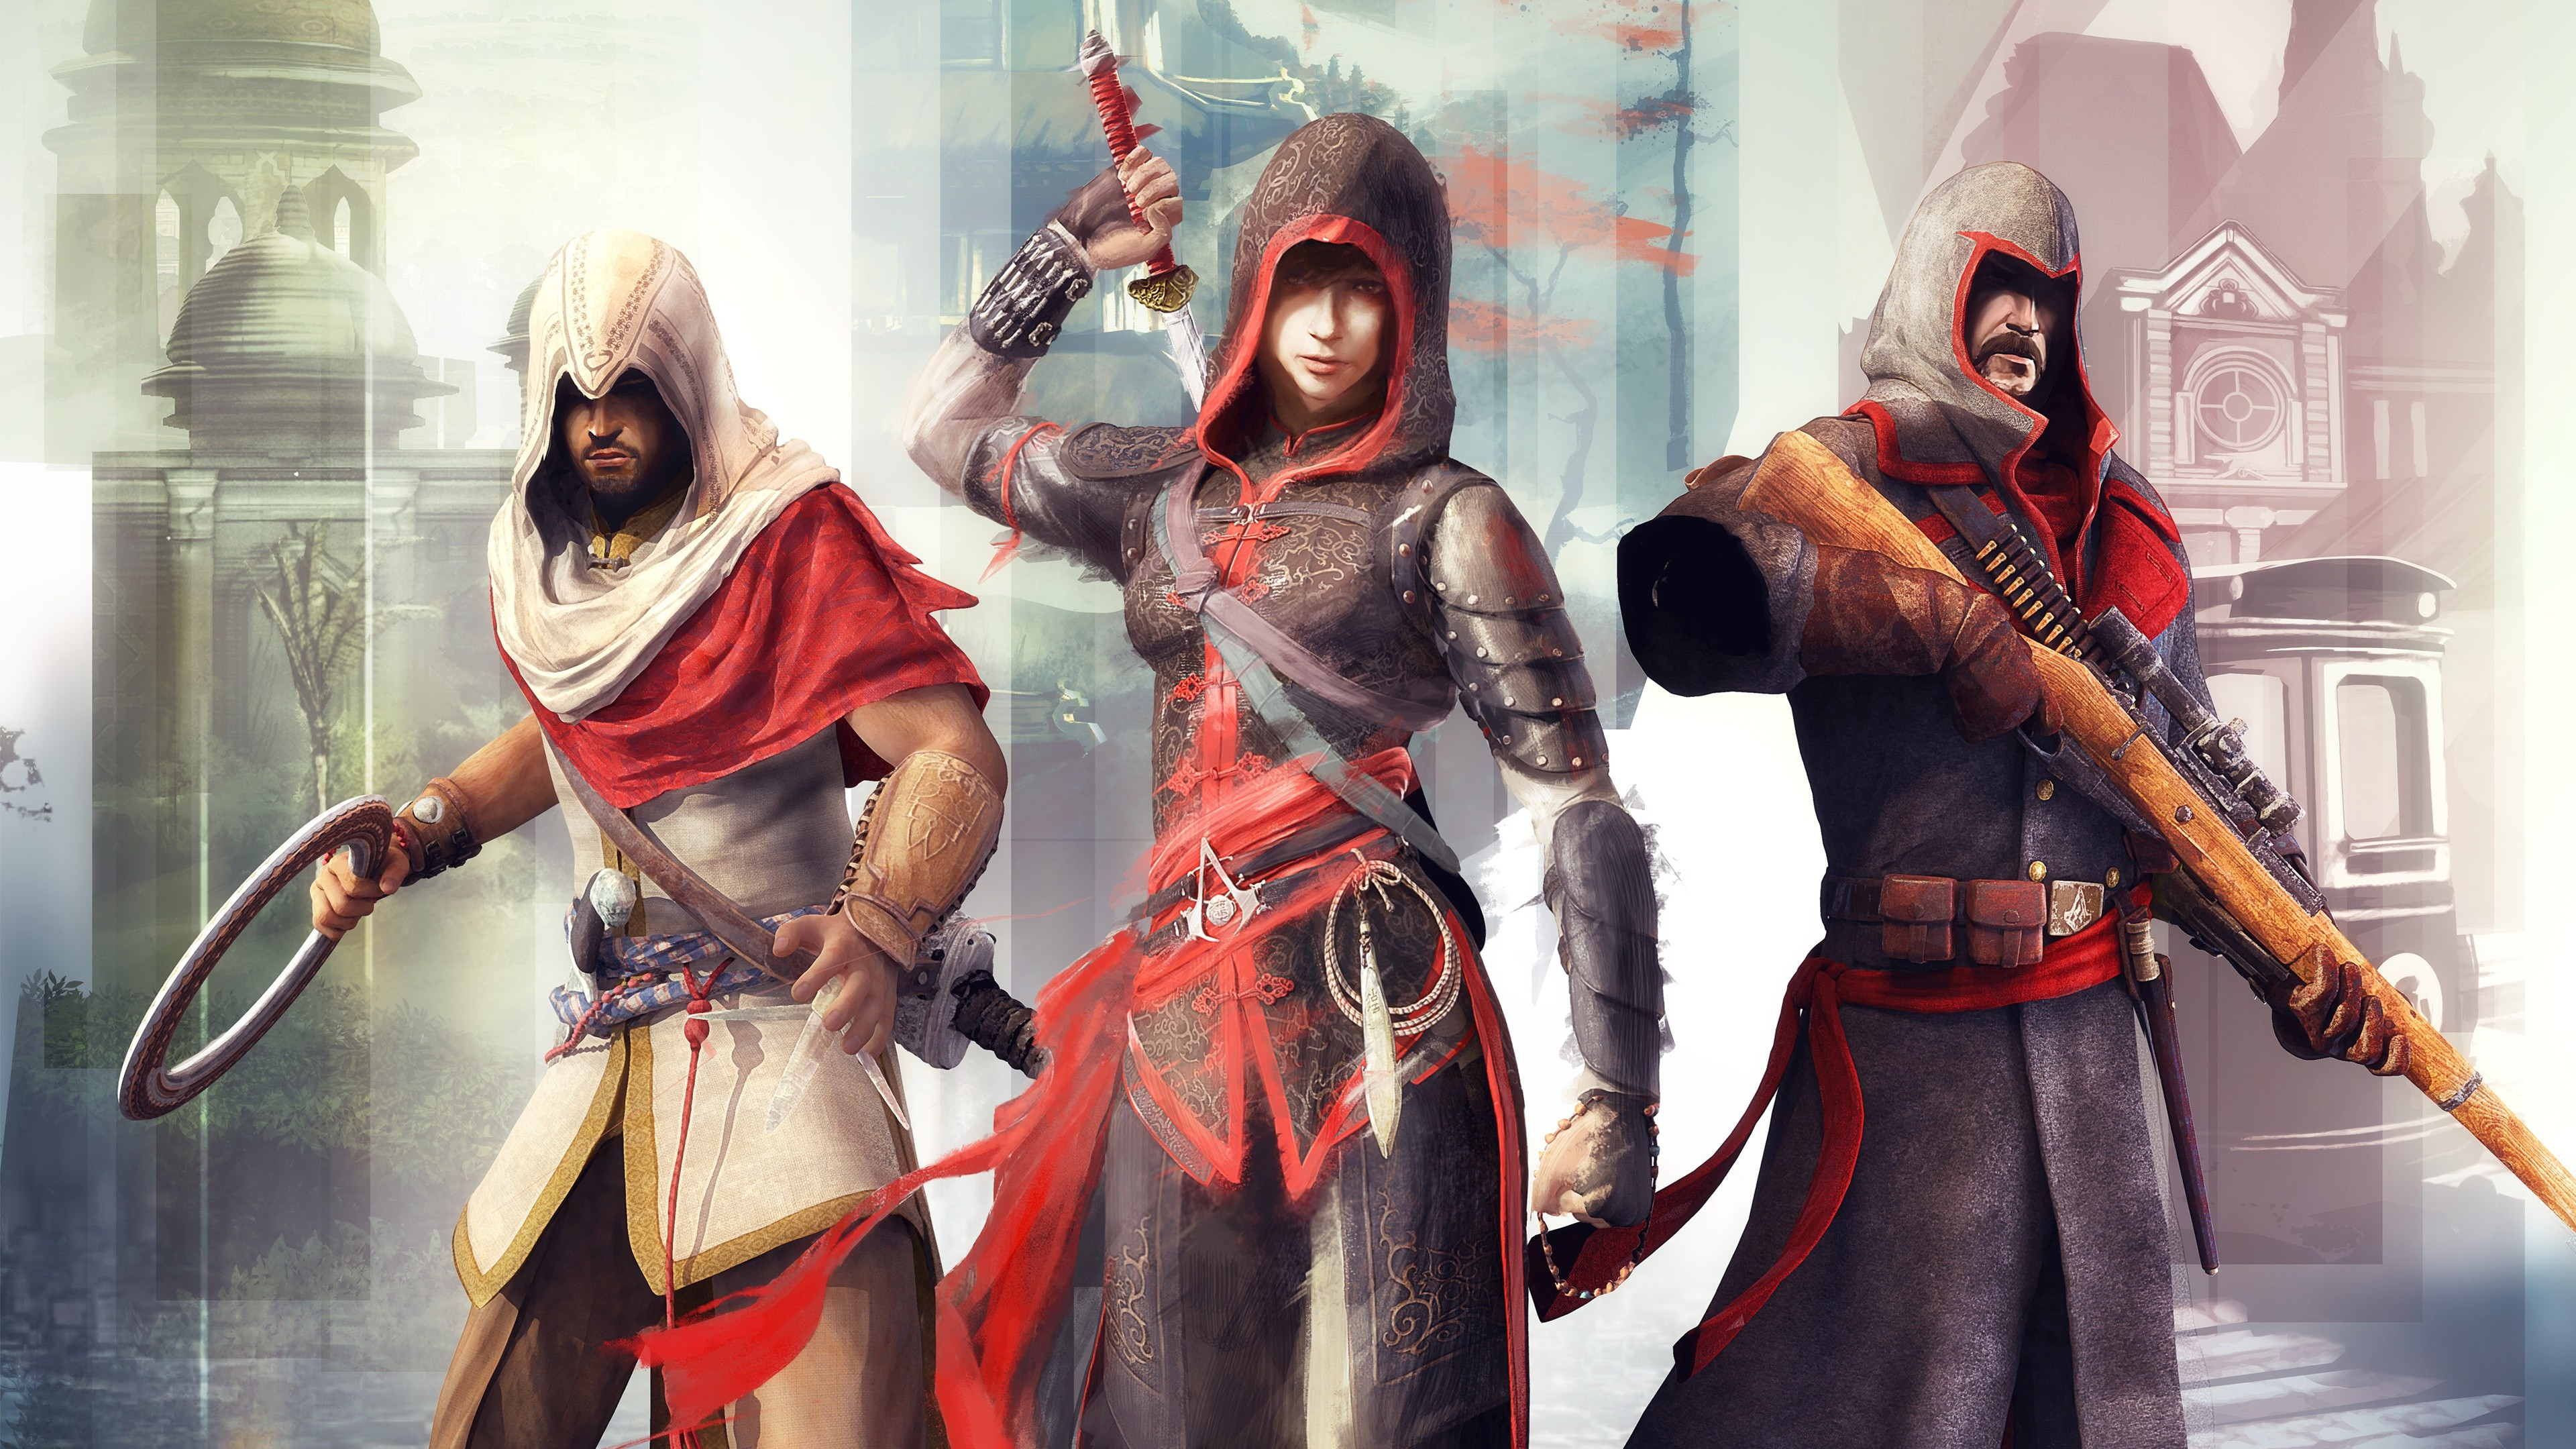 Ultra Hd 4k Background Image Assassins Creed Chronicles